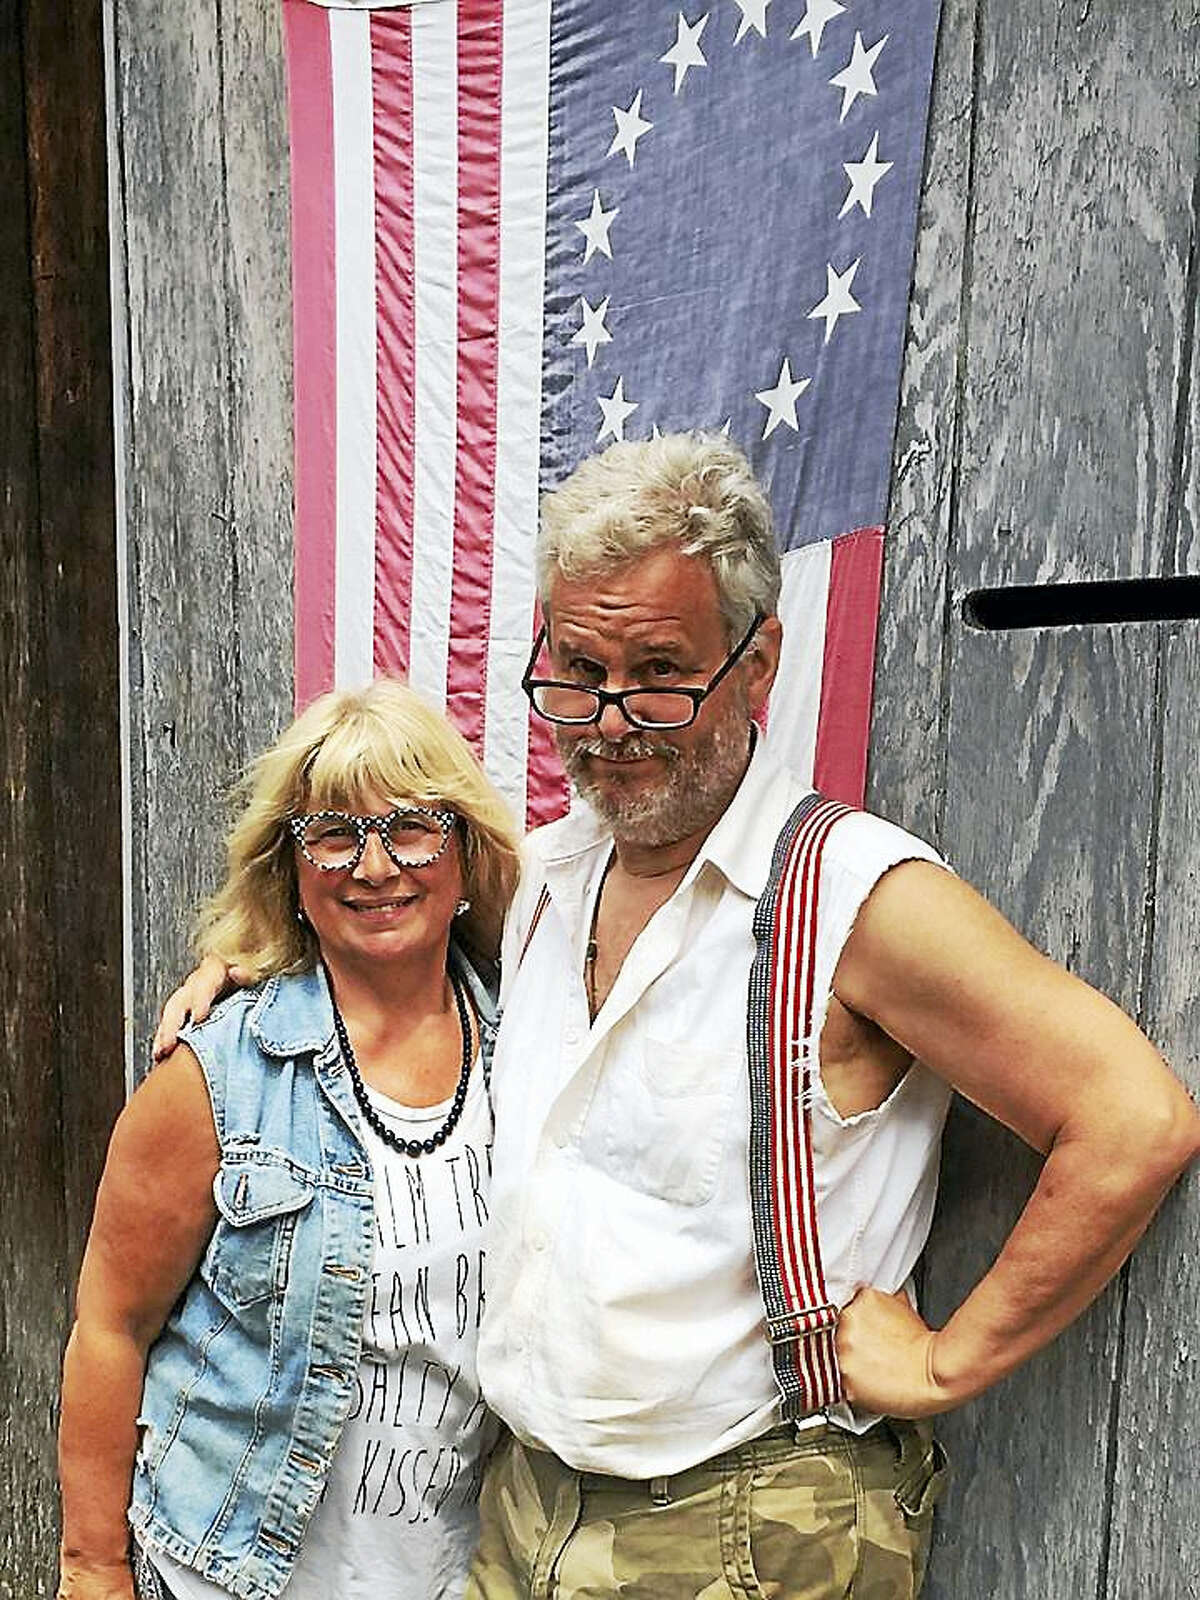 Contributed photoRose Buckens and Harvey Hubbell will be joined by Jodie Siwik at a build-a-lending-library box workshop on July 2 in Litchfield.